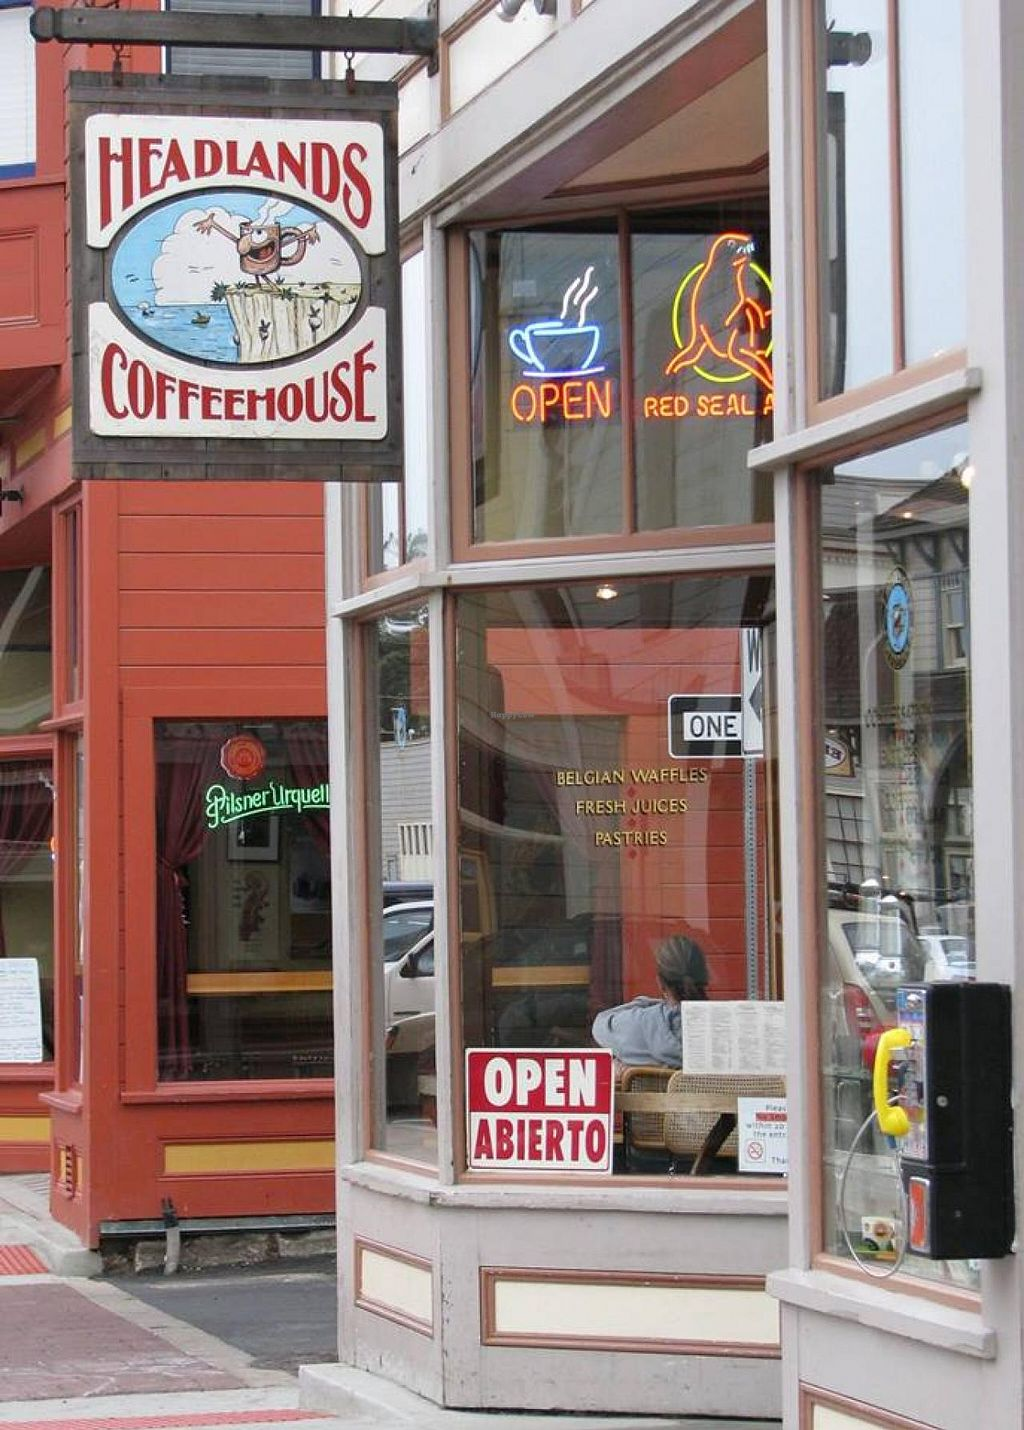 """Photo of Headlands Coffeehouse  by <a href=""""/members/profile/community"""">community</a> <br/>Headlands Coffeehouse <br/> October 26, 2014  - <a href='/contact/abuse/image/41146/84000'>Report</a>"""